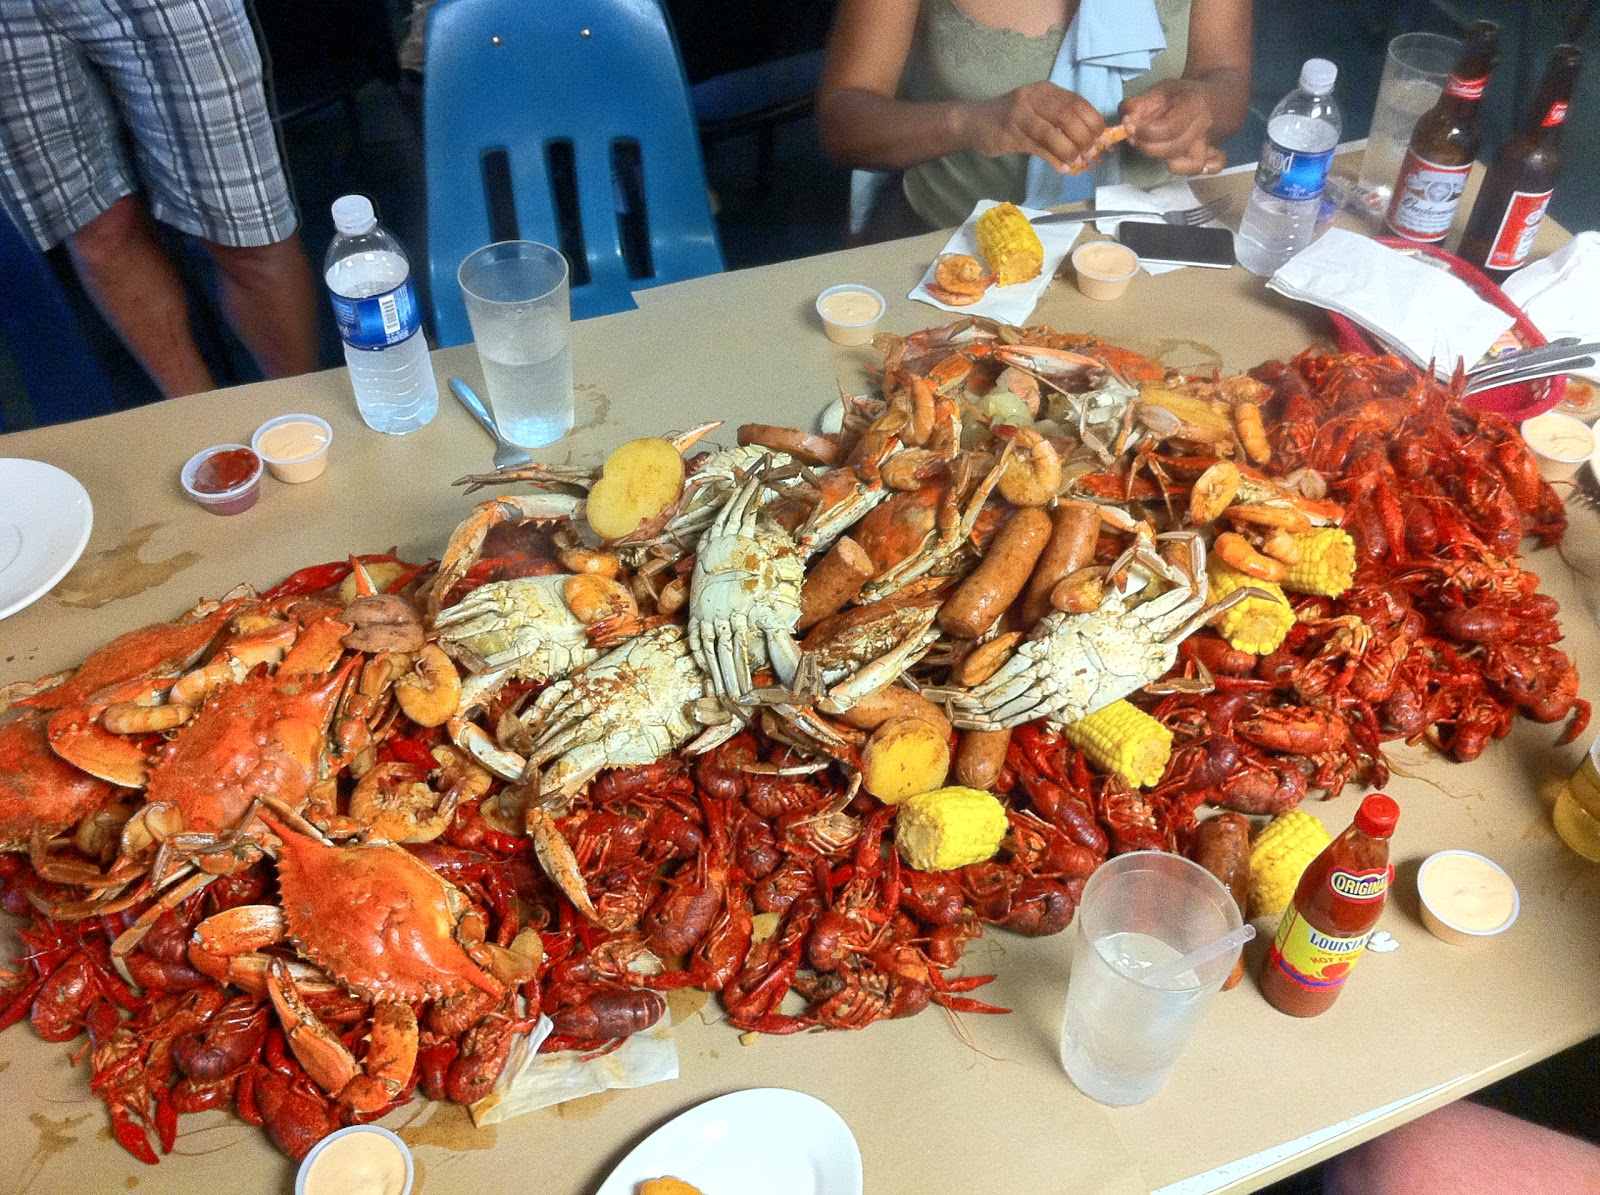 Boiled Crawfish, Crabs And Shrimp At Susie's Seafood In Morgan City, La